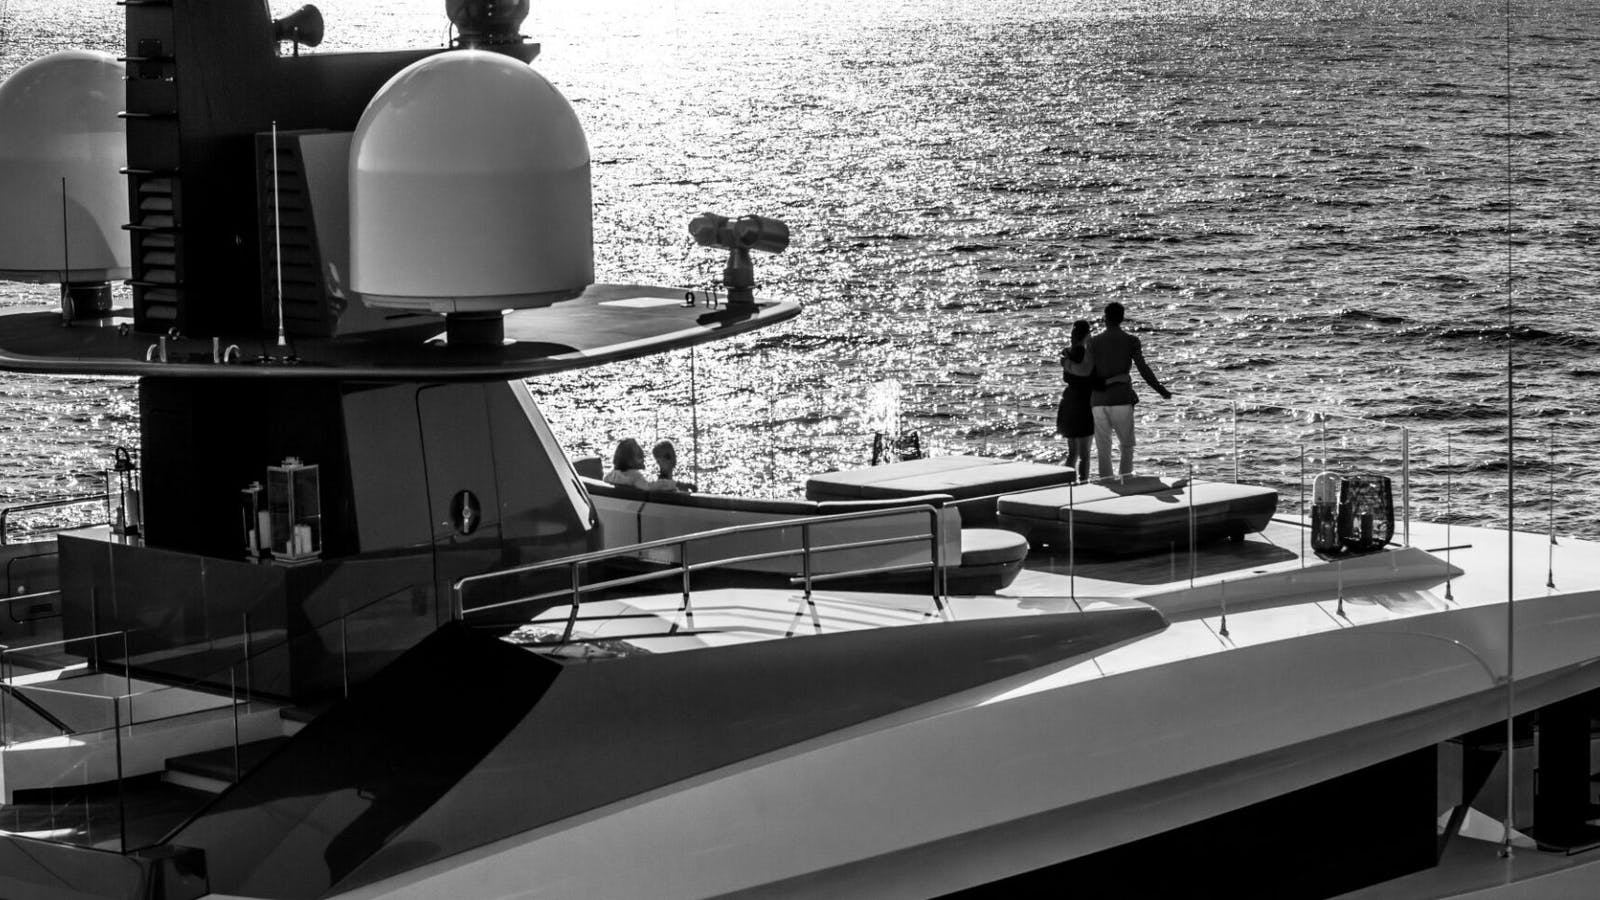 Couple looking into horizon onboard sun deck of a superyacht for sale